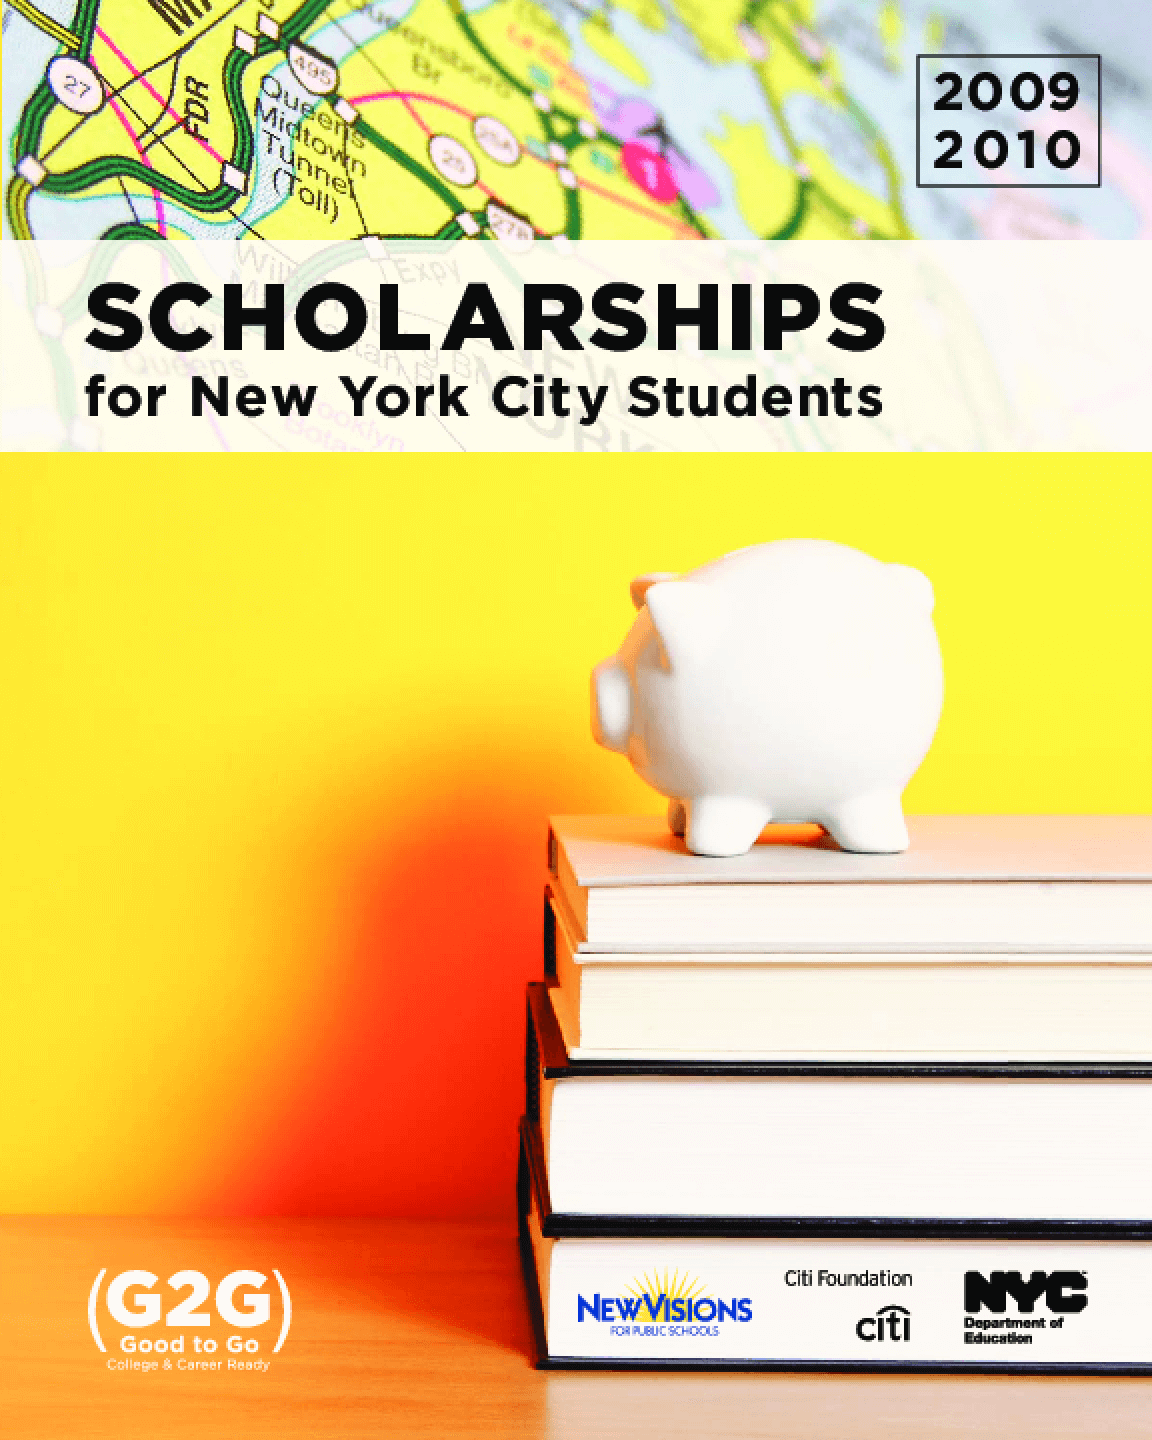 Scholarships for New York City Students